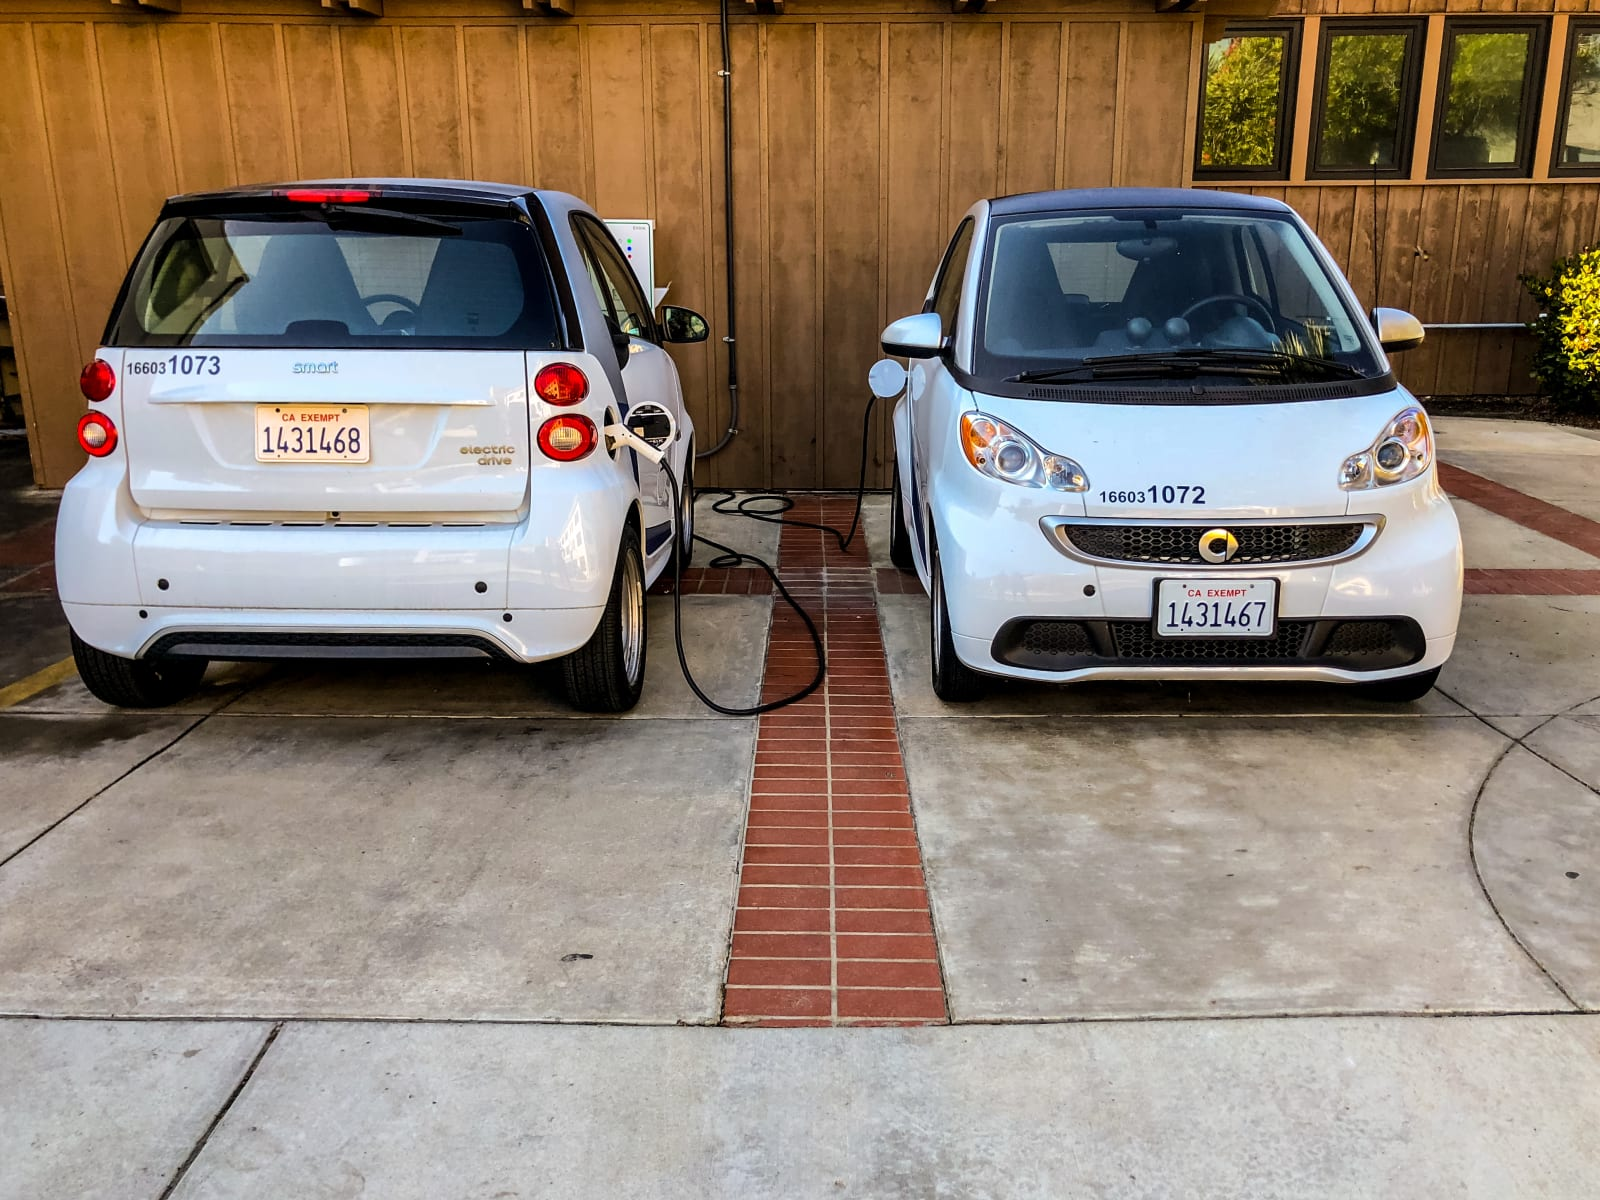 Daimler Is No Longer Going To Its Eye Catching Small Smart Fortwo Electric Cars In North America The Company Told Techcrunch That 2019 Model Will